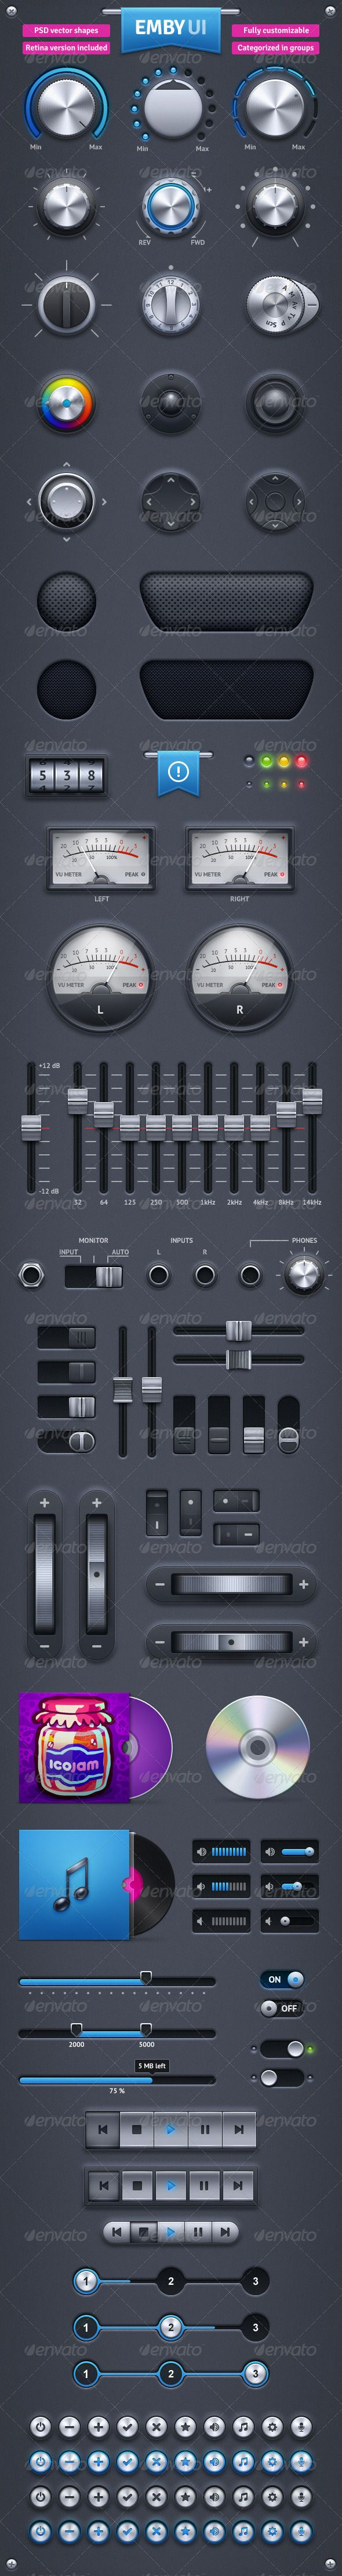 Emby UI  #GraphicRiver         EMBY UI contains knobs, counter, volume meters, speakers, light bulbs, color selector, gamepads, ribbon, scroll wheels, equalizer, switches, tumblers, audio inputs, cd, vinyl, sound bars, steps meter, buttons, sliders, progress bars, player controls, range selector.   - Vector shapes layered - 2 PSD files (normal and retina) - Each element layered and categorized in groups     Created: 3May13 GraphicsFilesIncluded: PhotoshopPSD HighResolution: Yes Layered…